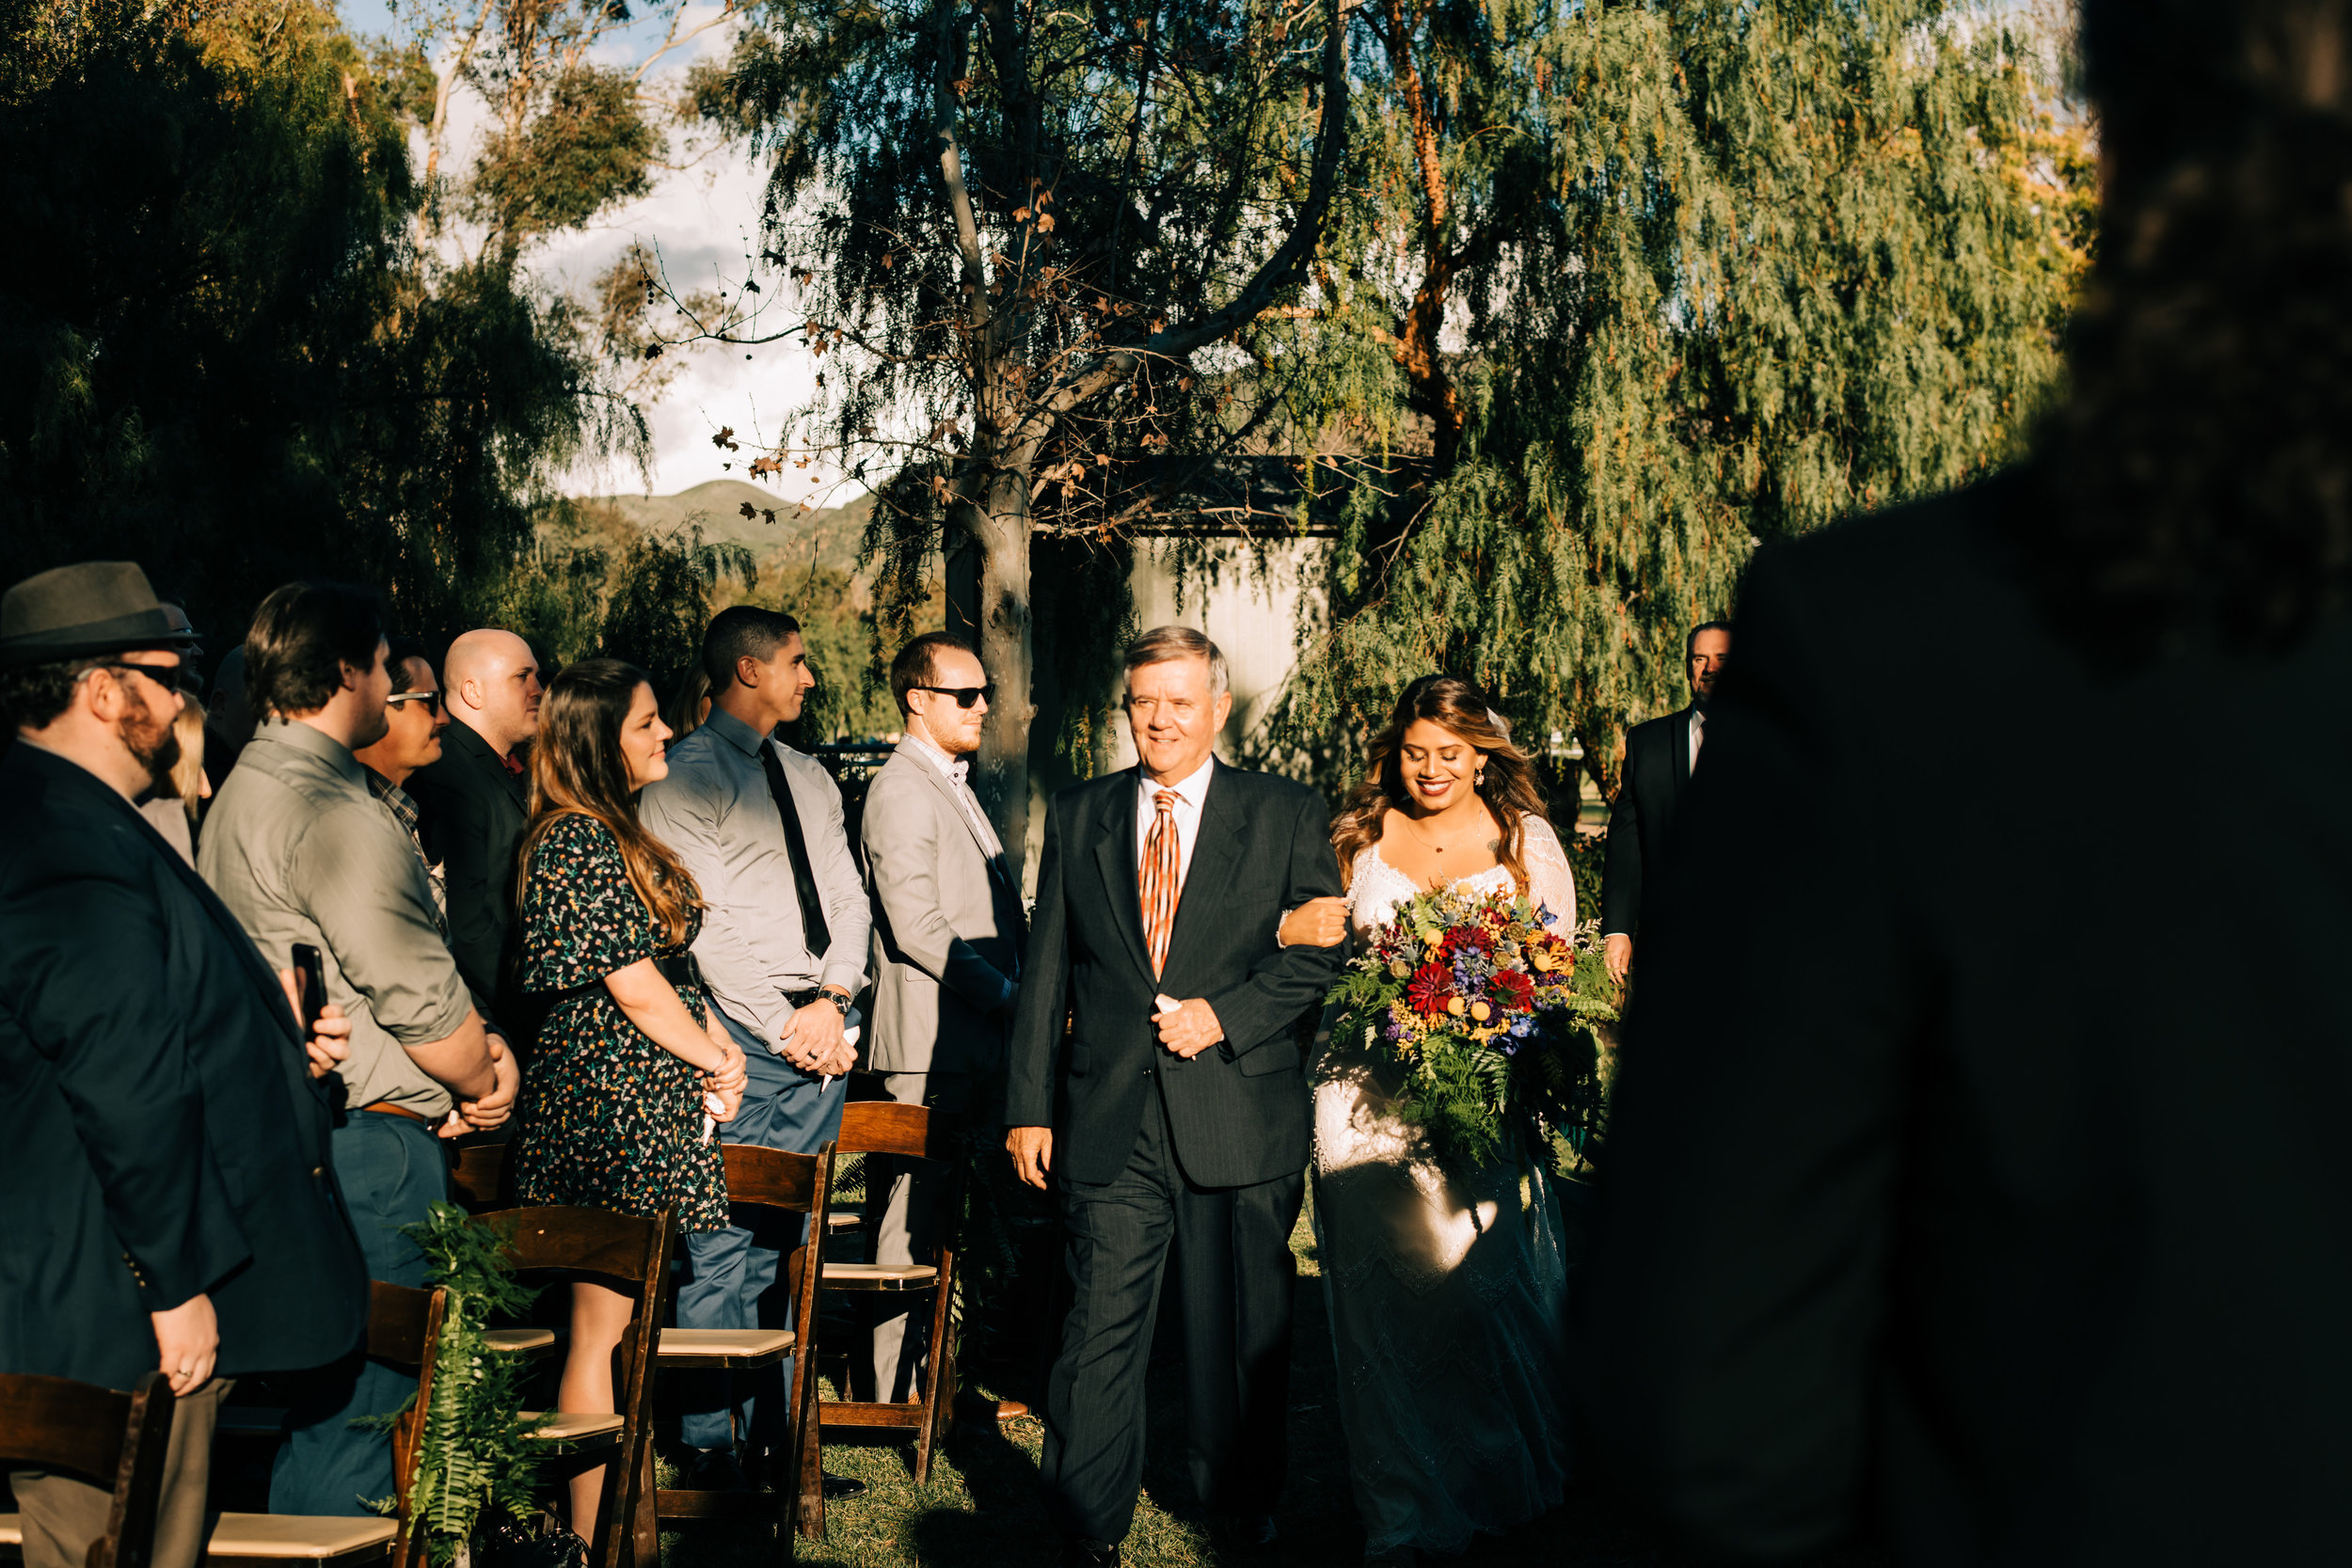 bay area nontraditional wedding photographer southern california boho wedding love light magic san francisco oakland northern california-491.jpg